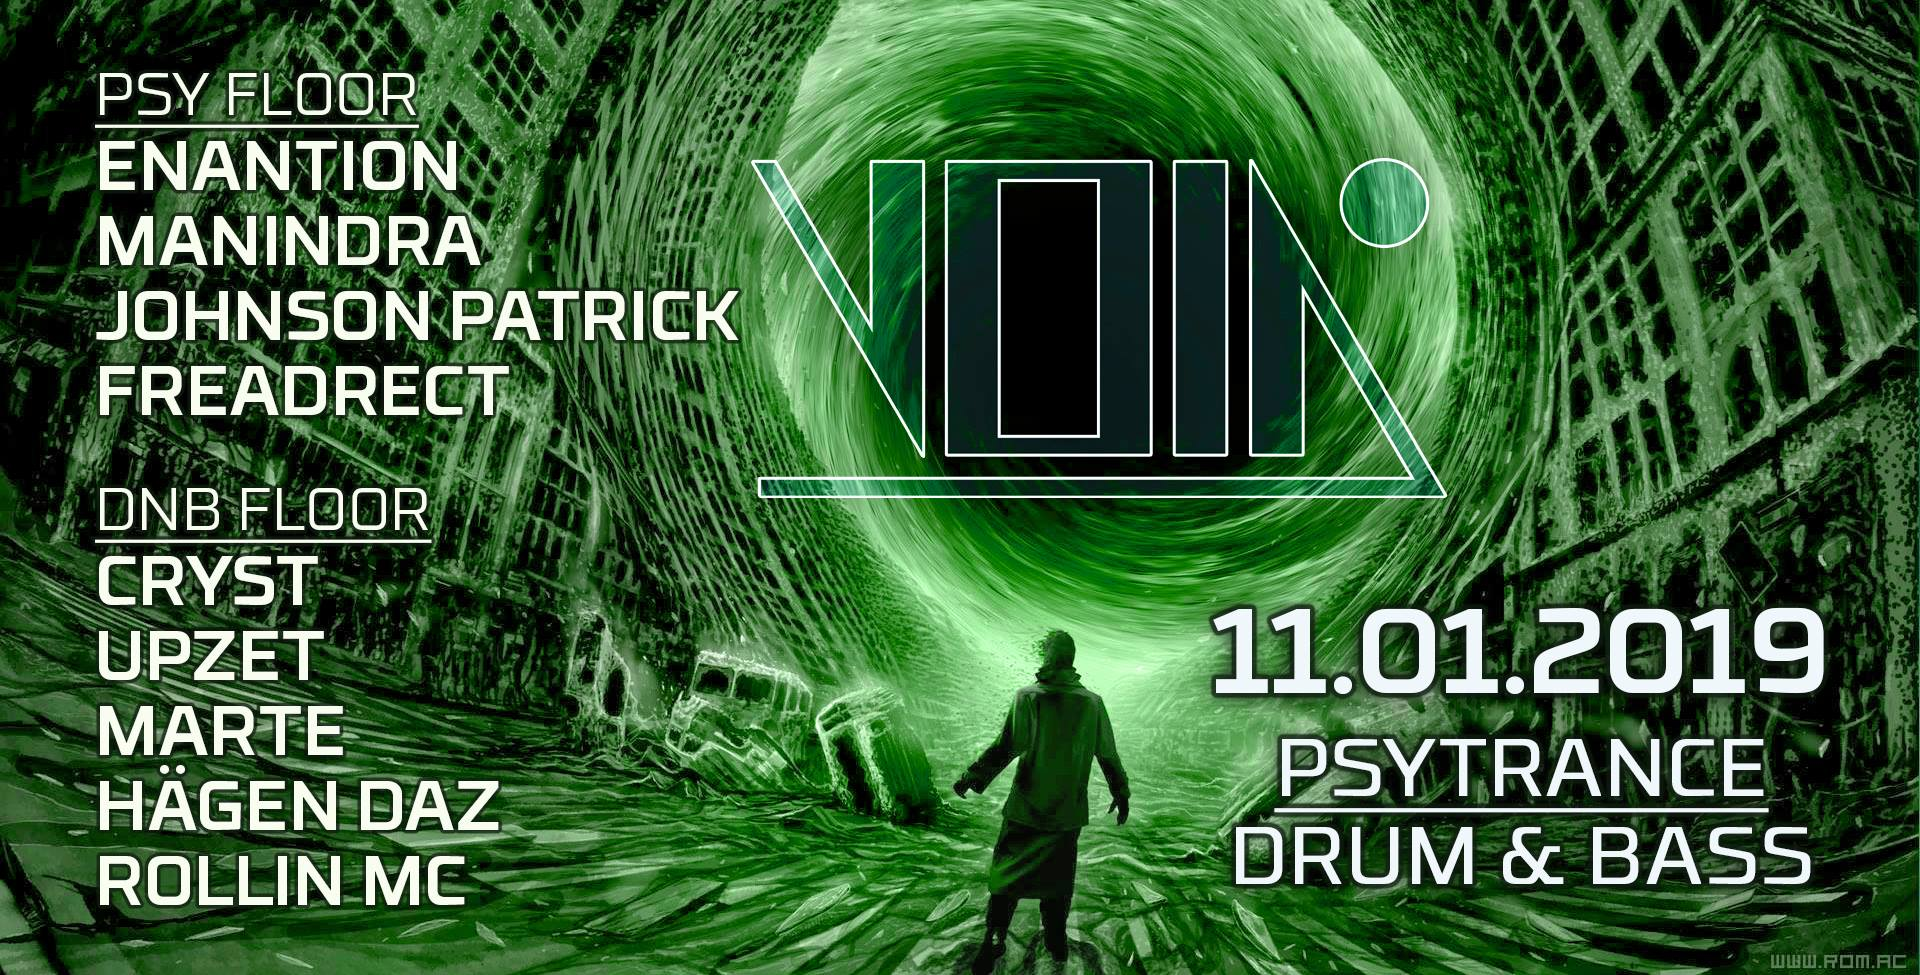 Enter the Void #27 (Psy / Dnb) at VOID Berlin